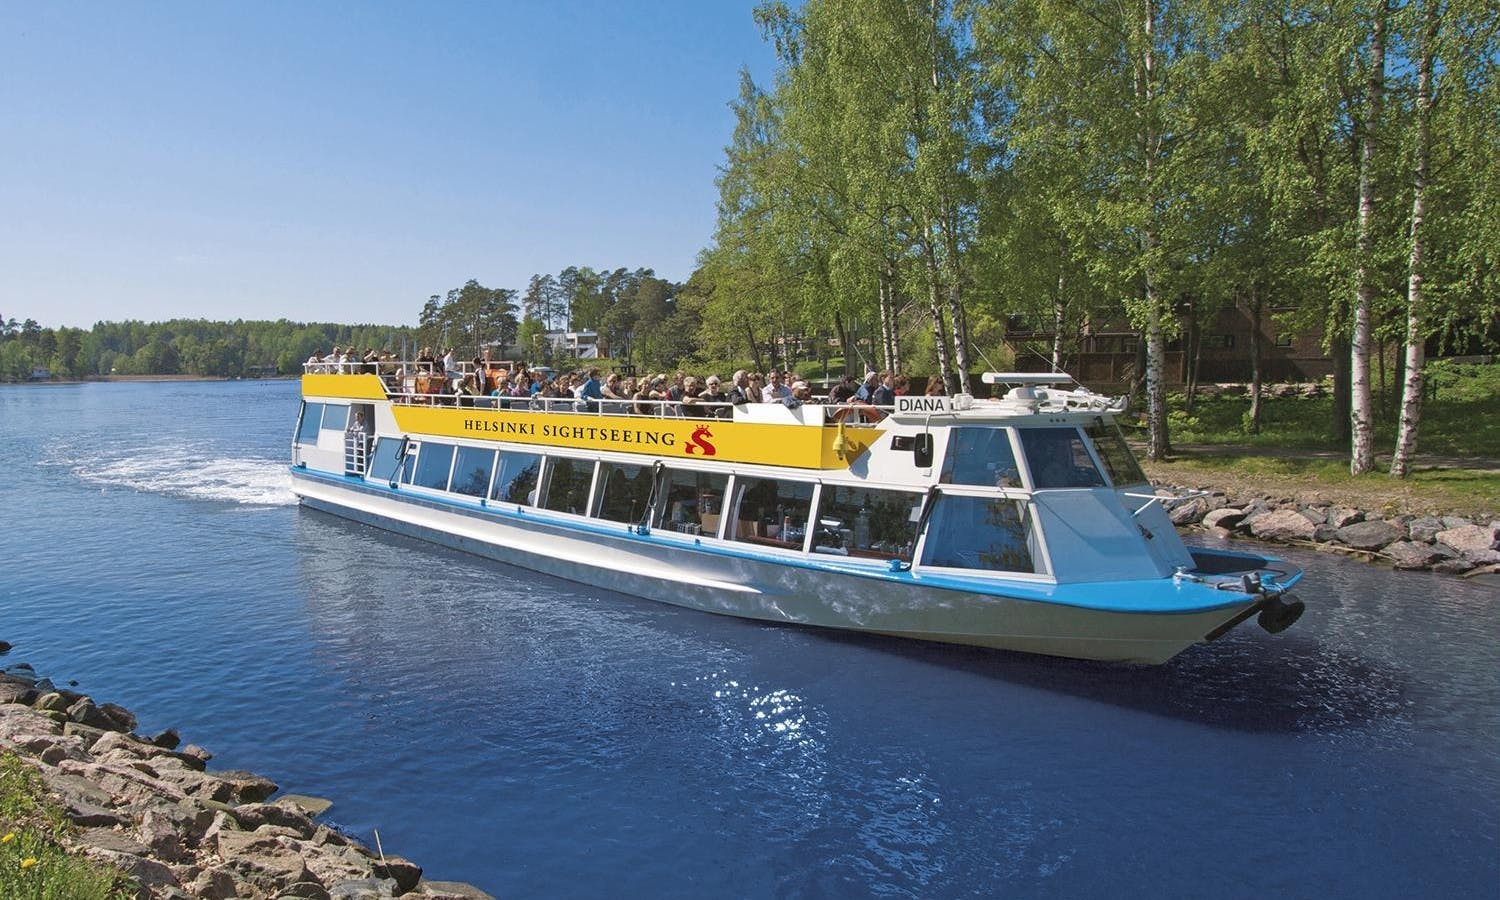 Helsinki cruise city boat tour